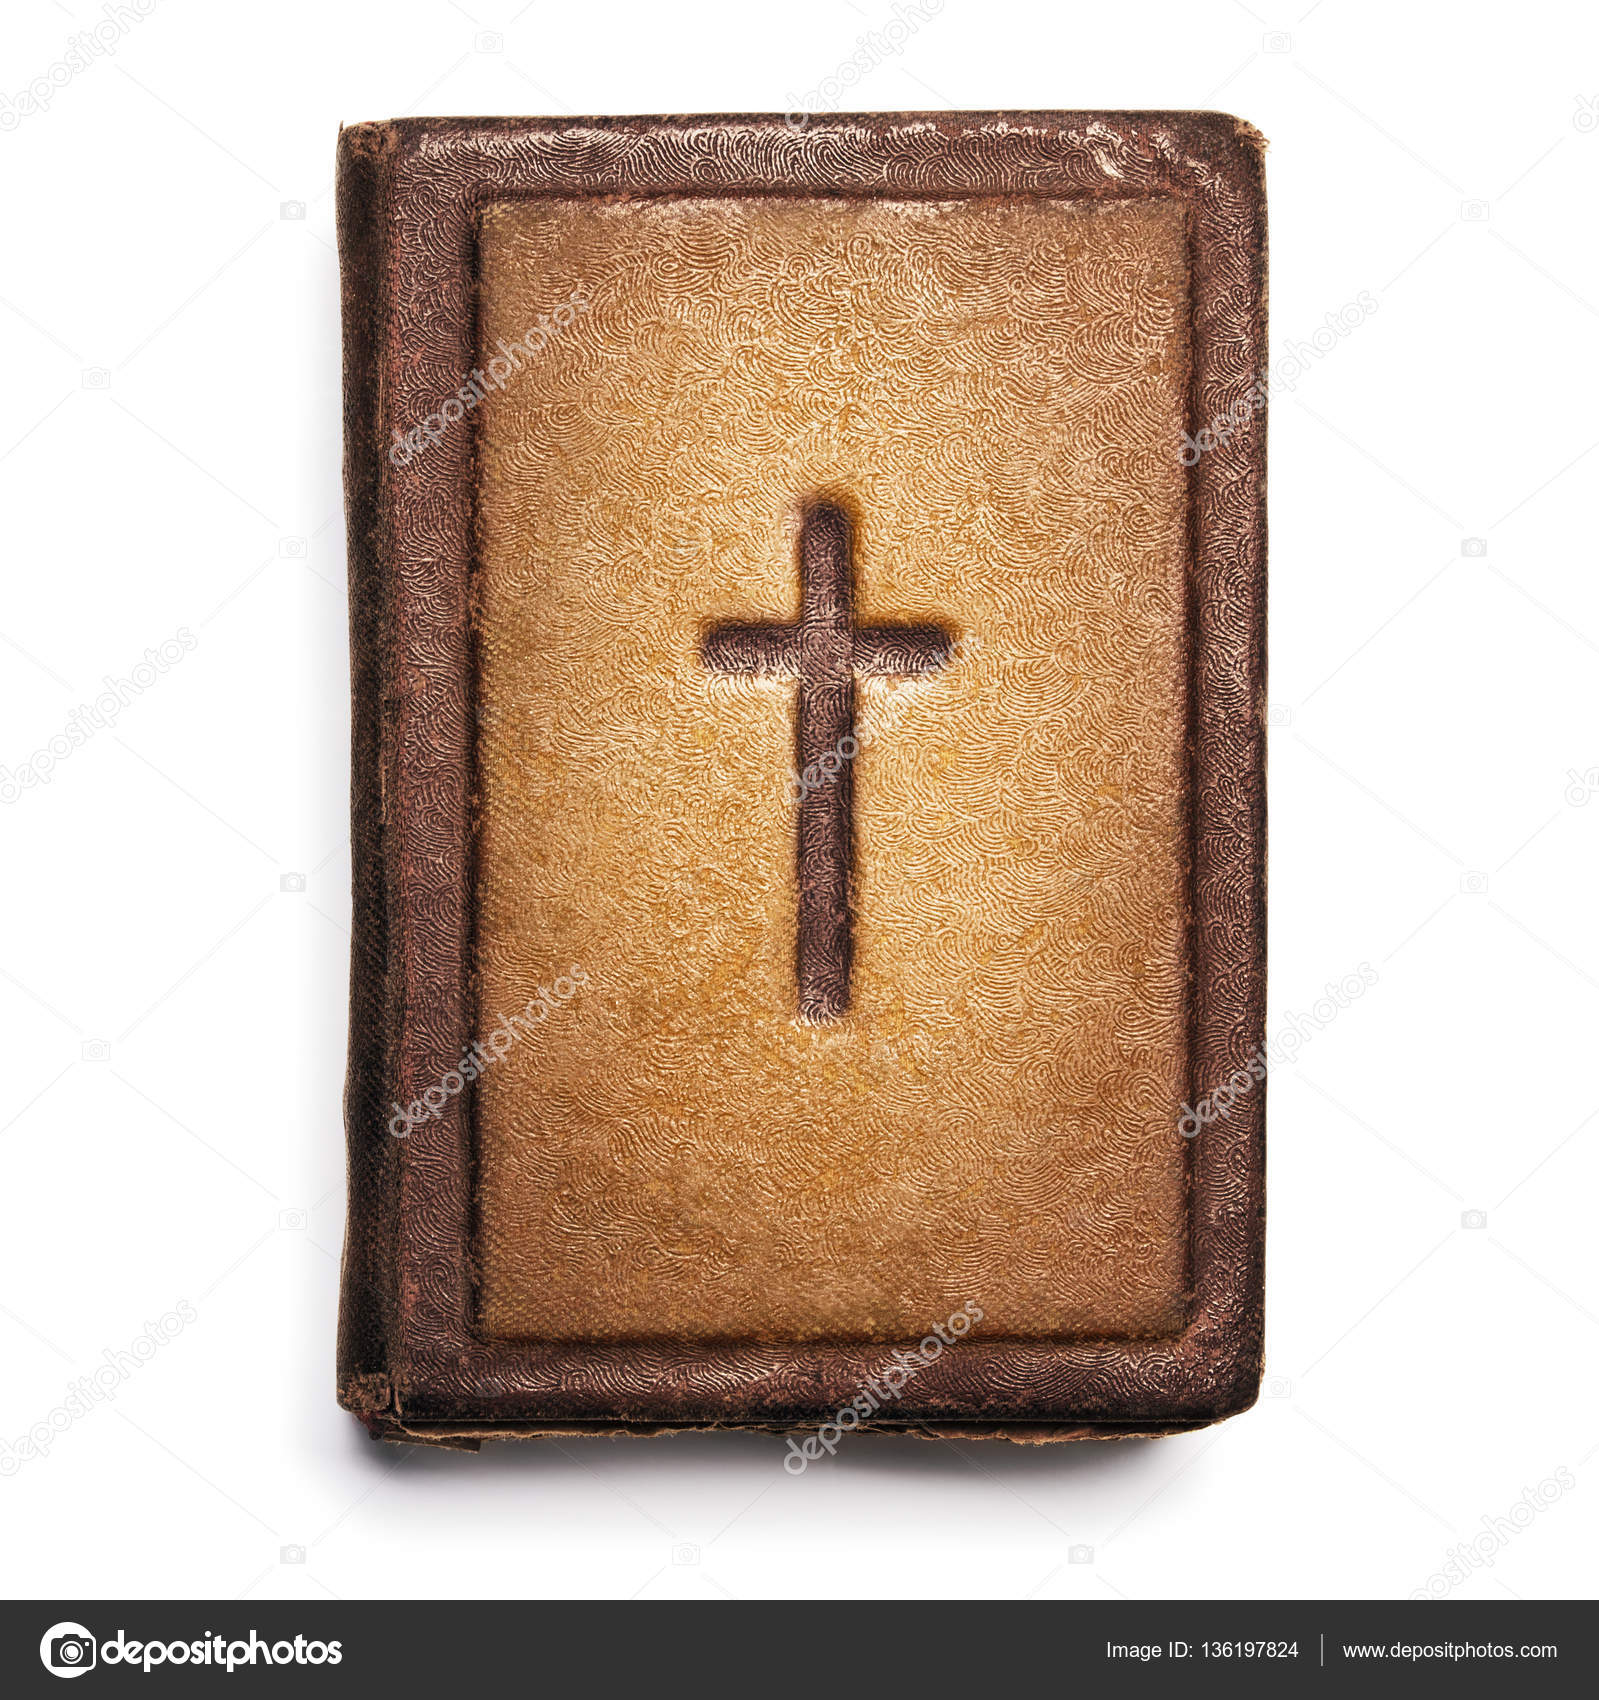 Old Bible Cover Vintage Leather Front Book Texture With Cross Stock Photo